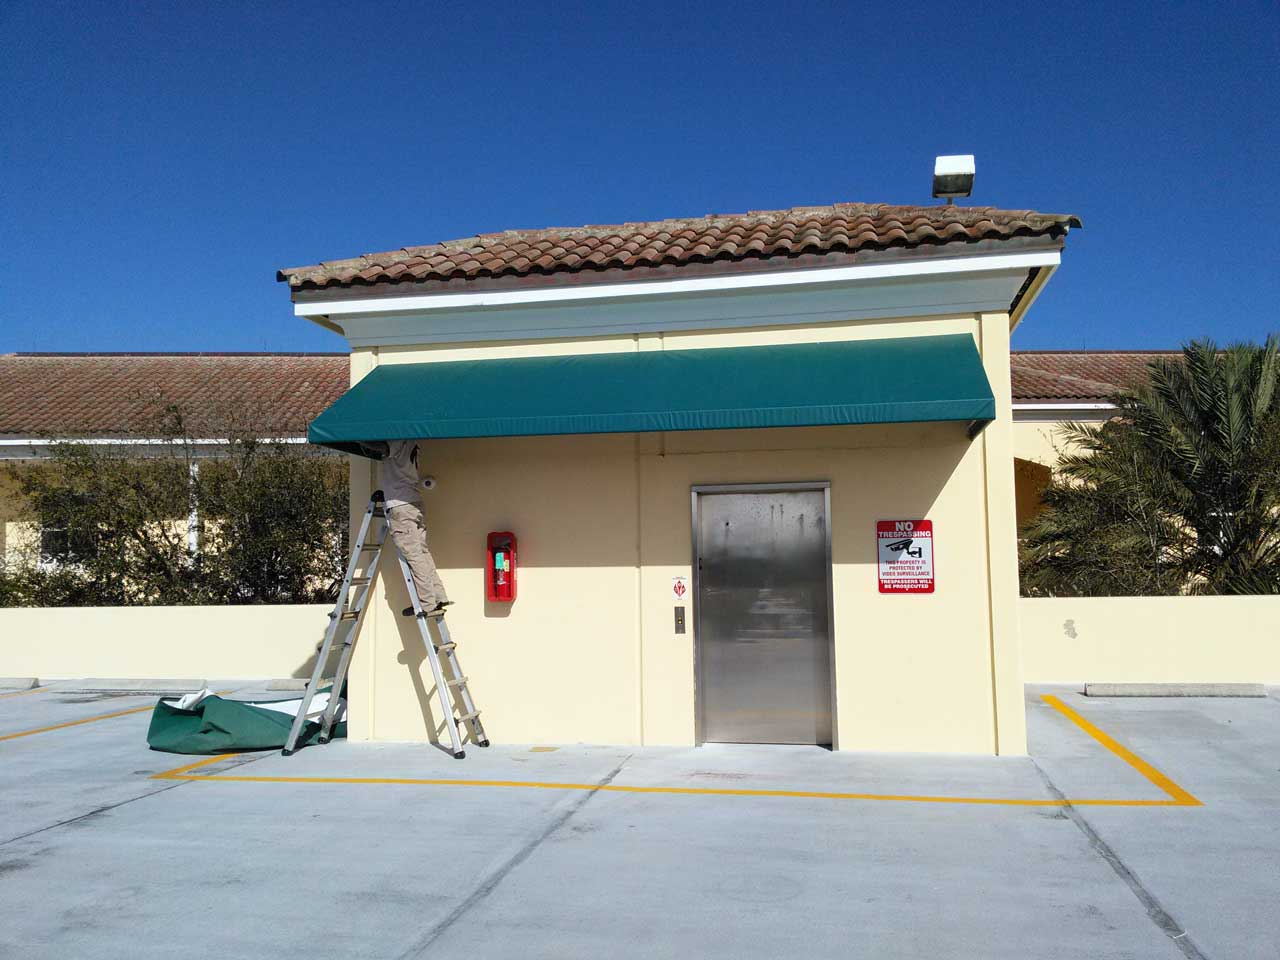 Roof access awning